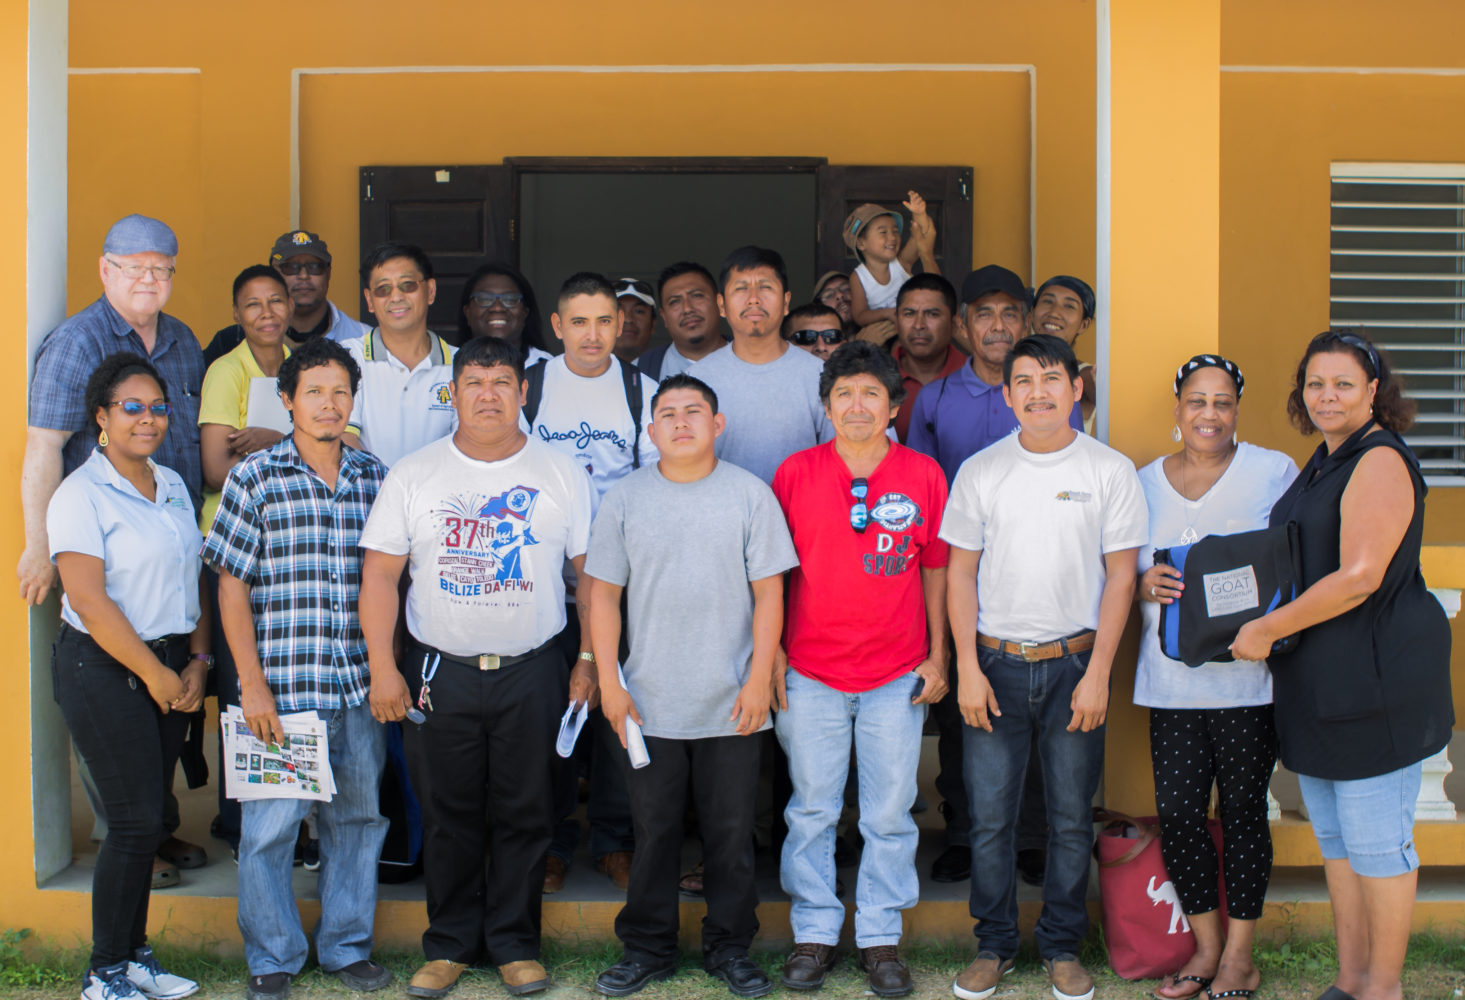 Toucan Education Program concludes 4 Year Project in Belize